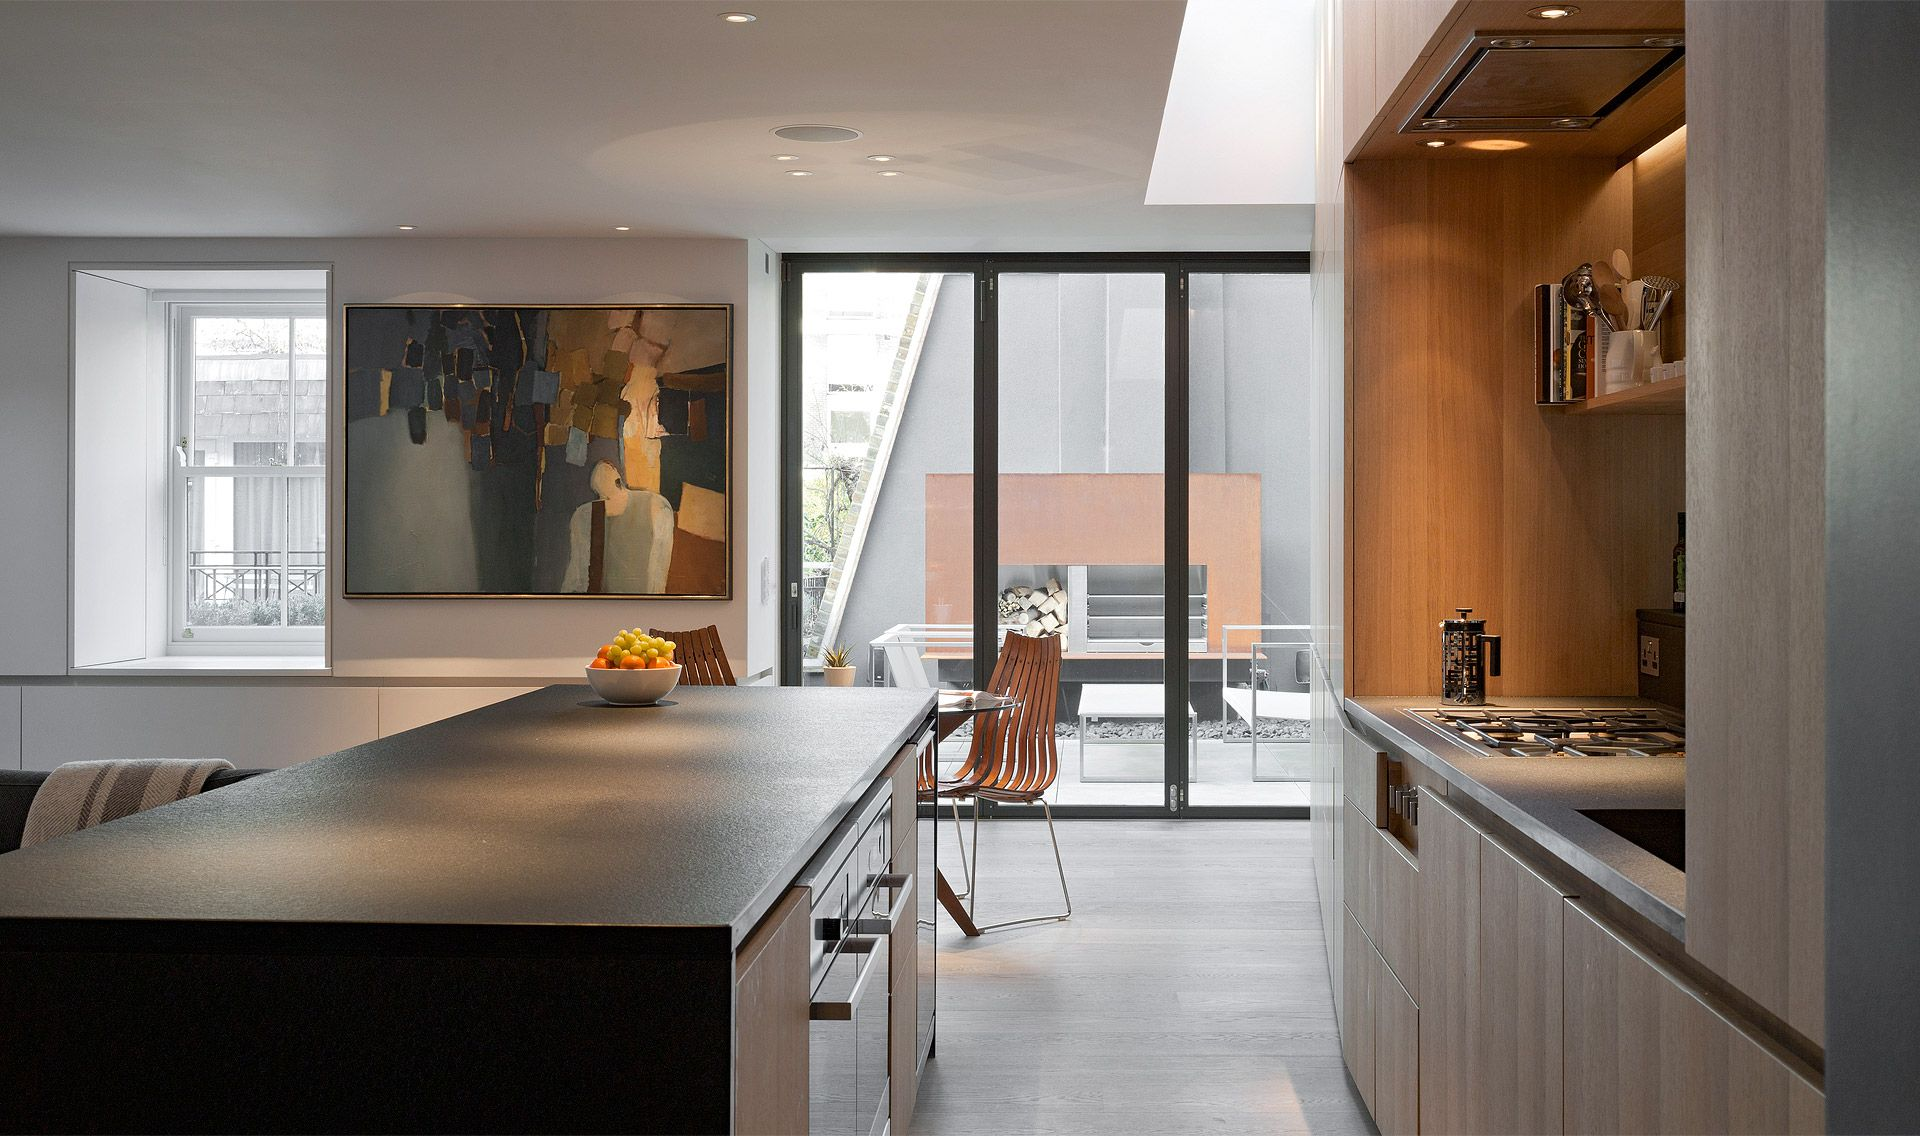 Mclean quinlan architects london winchester architecture in the town bayswater london